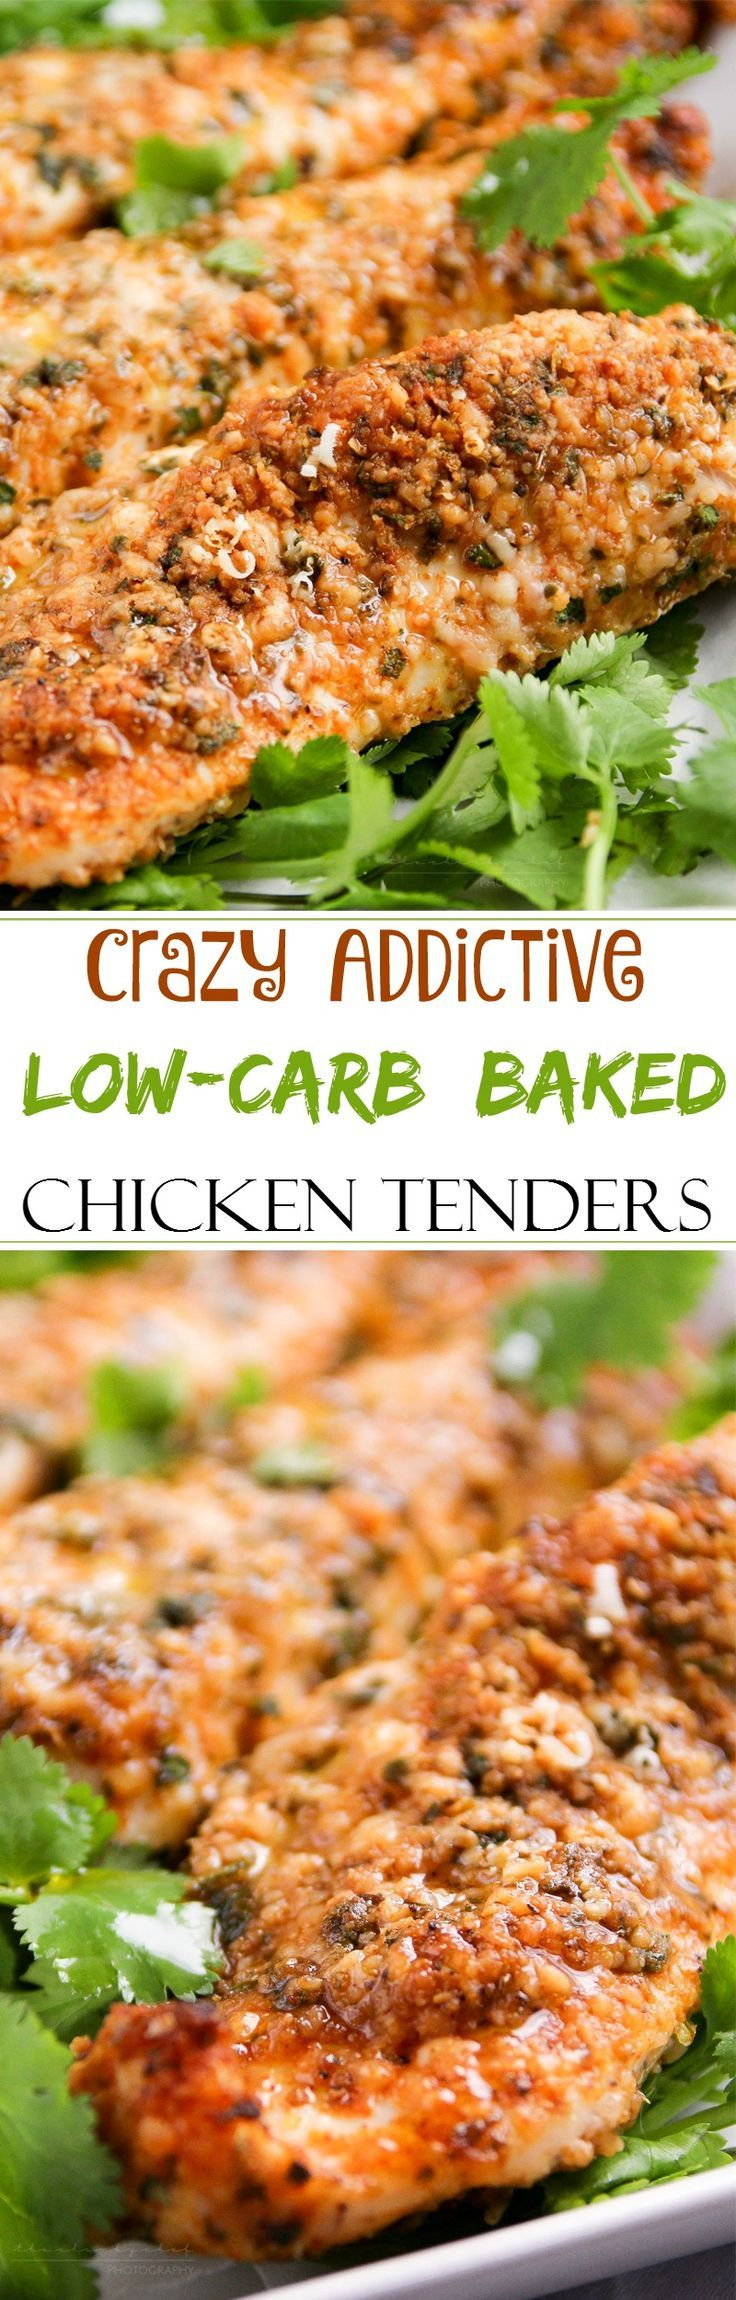 Low Carb Baked Chicken Tenders   These baked chicken tenders are coated in a deliciously savory crust  yet have zero breading  which makes for an awesomely low carb meal    http   thechunkychef com